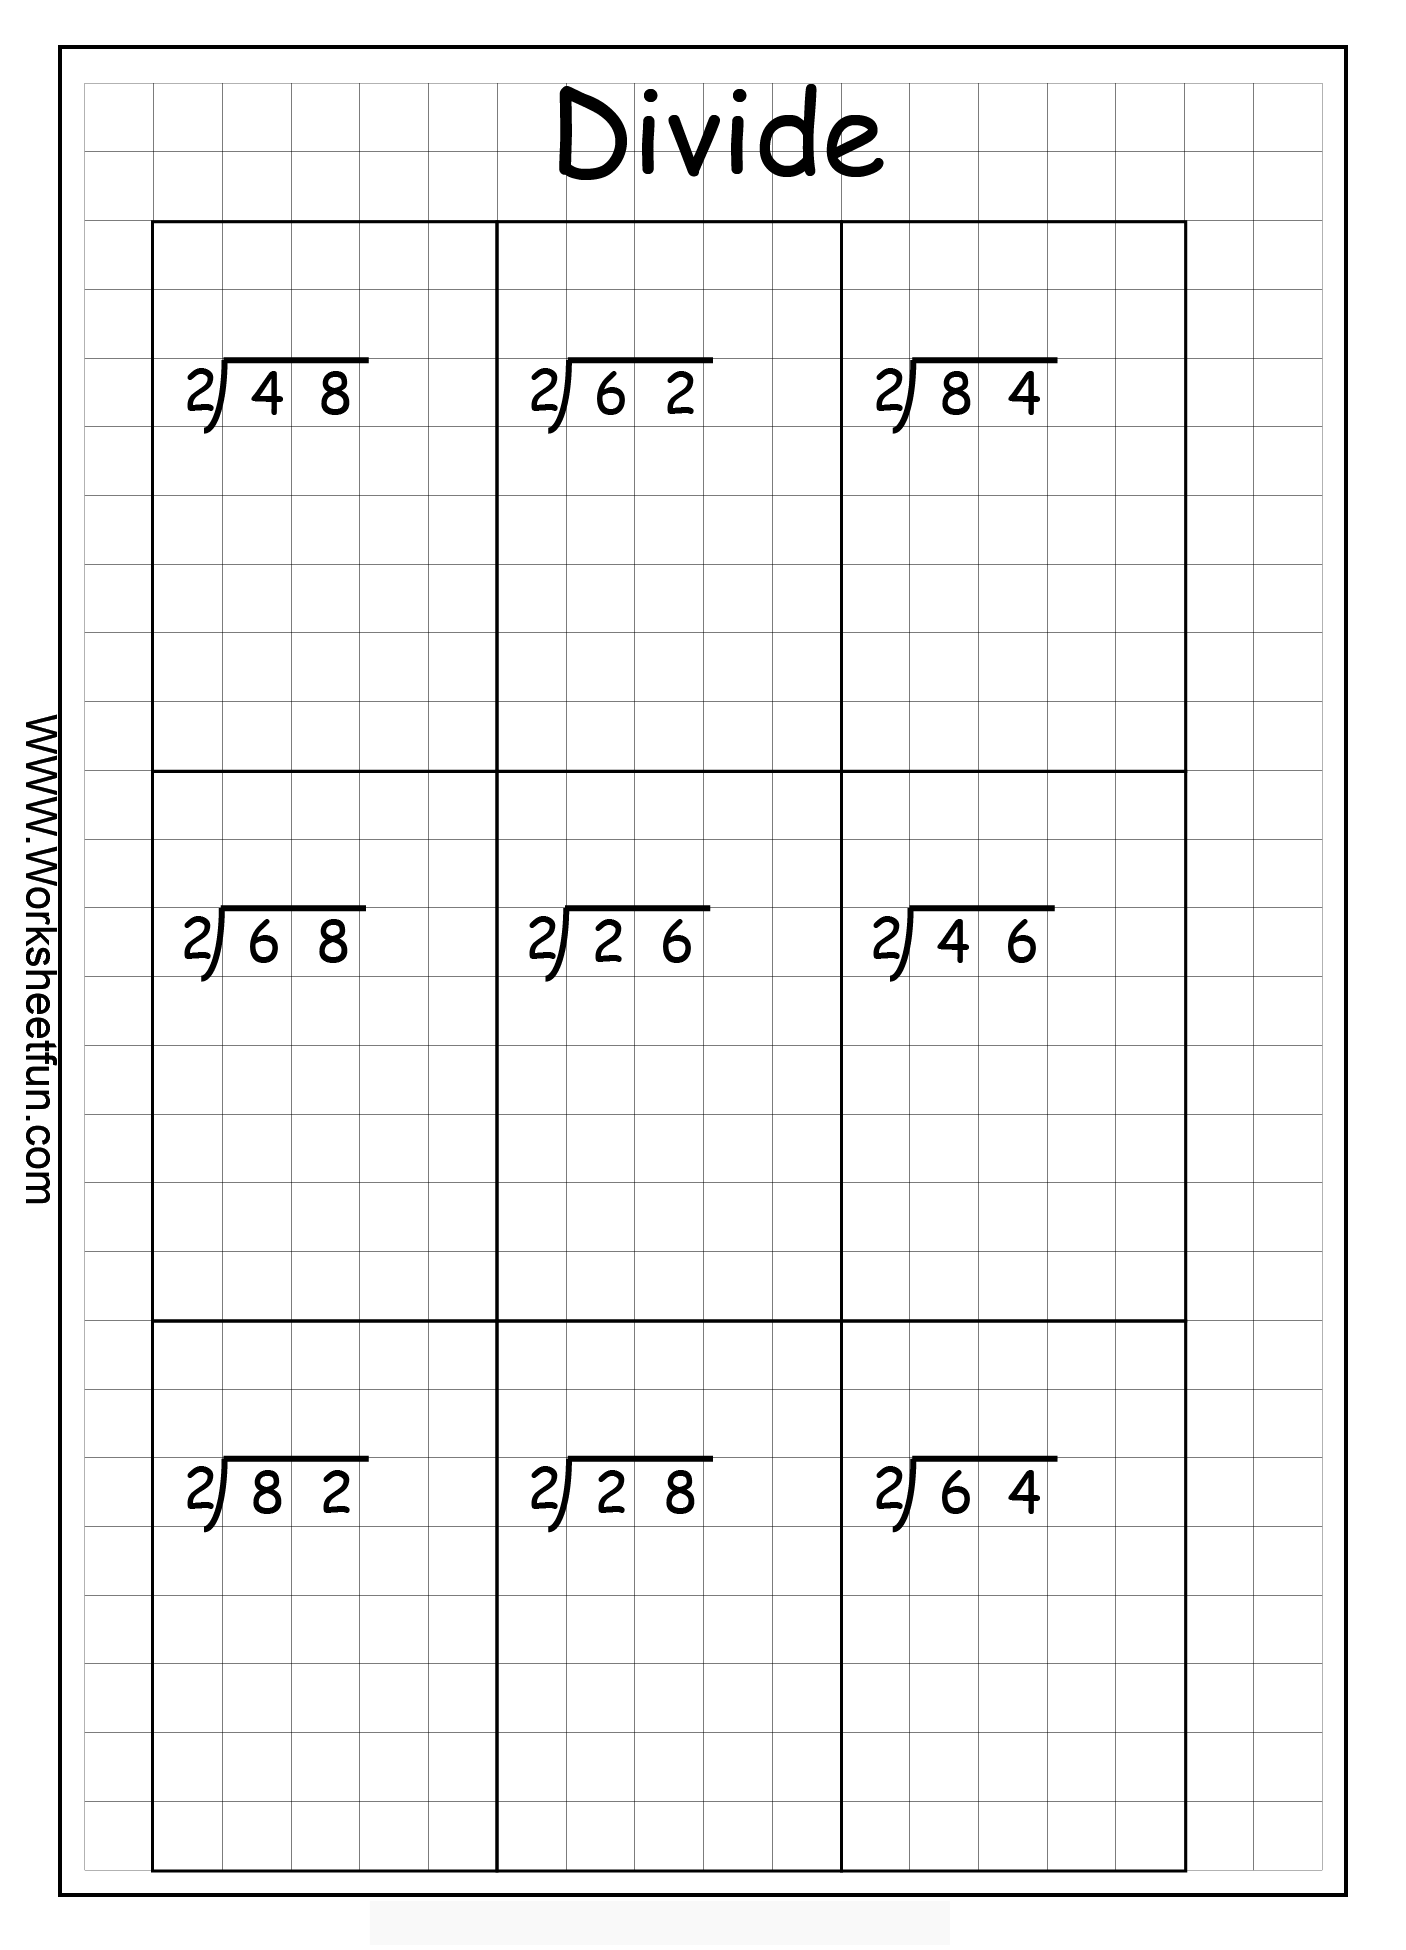 Long Division 2 Digits By 1 Digit No Remainder 10 Worksheets – Division Printable Worksheets